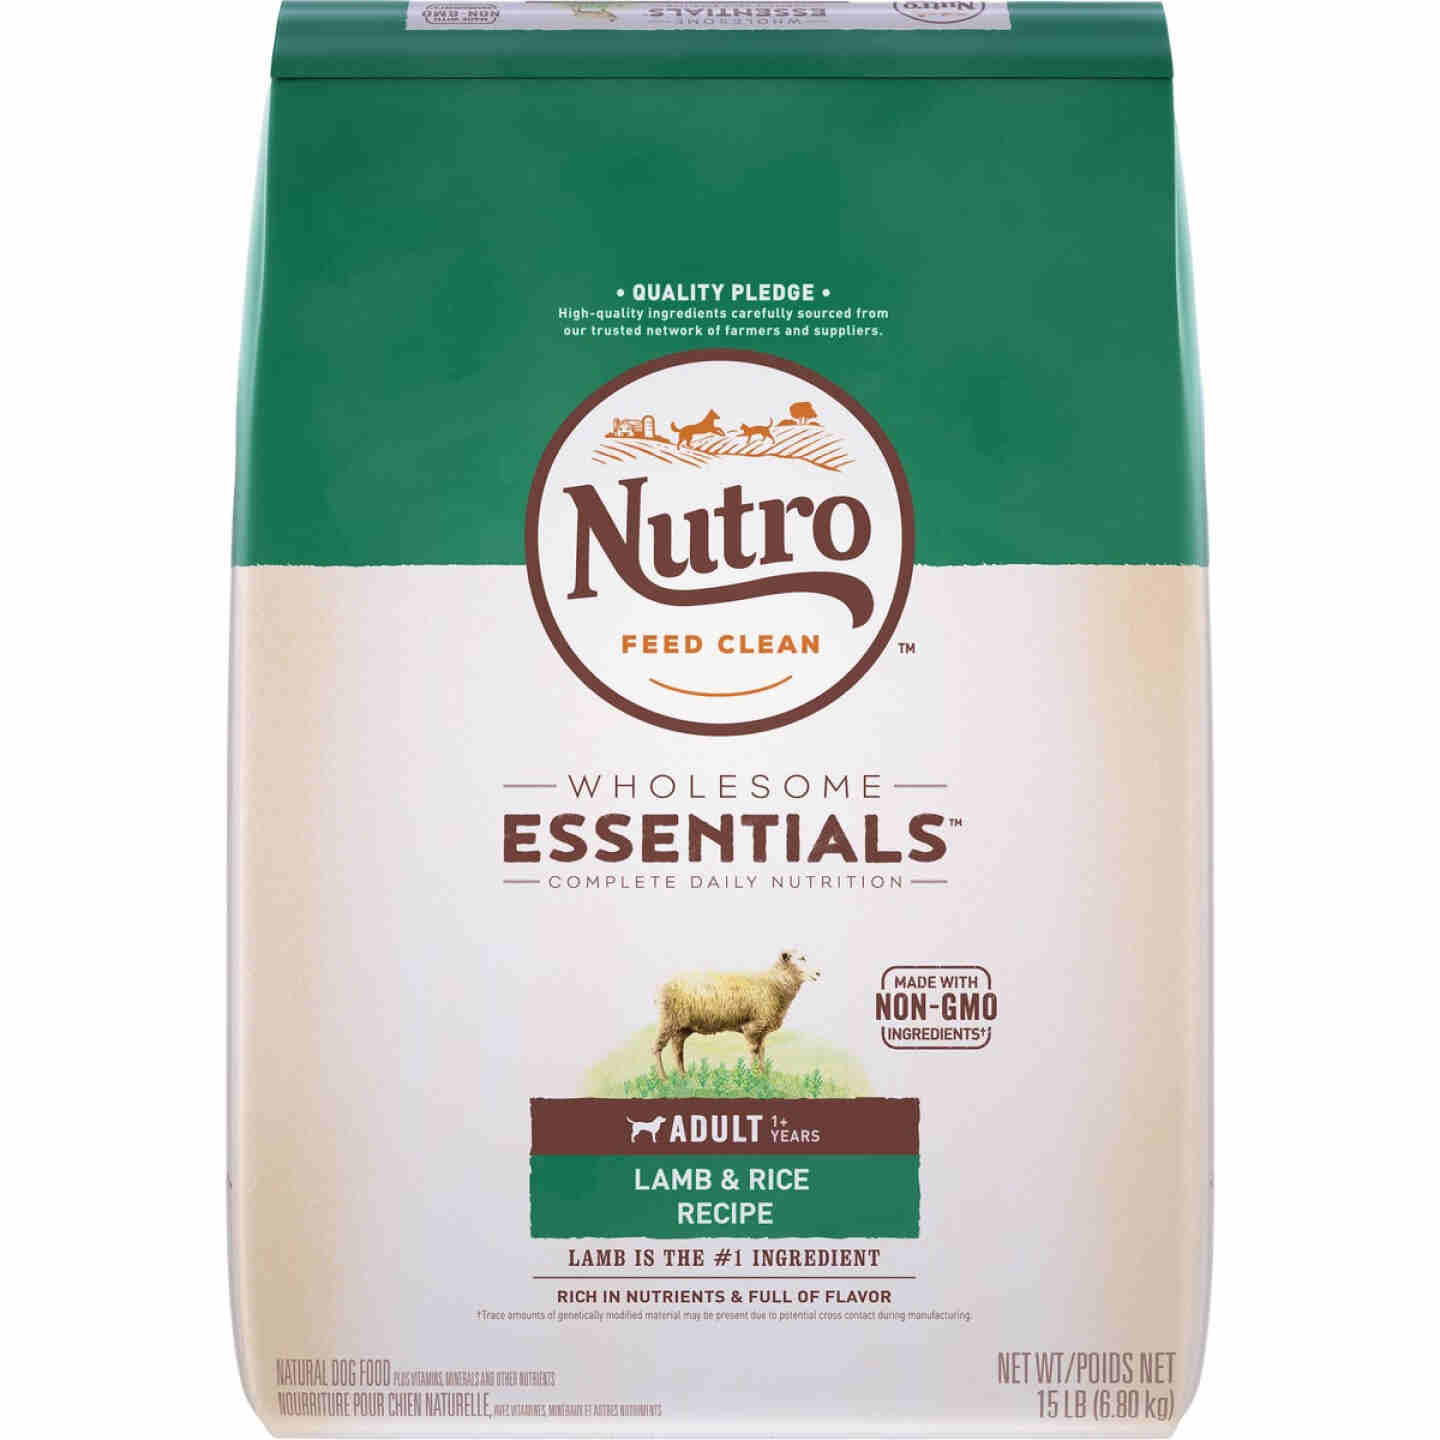 Nutro Wholesome Essentials 12 Lb. Lamb & Rice Adult Dry Dog Food Image 1